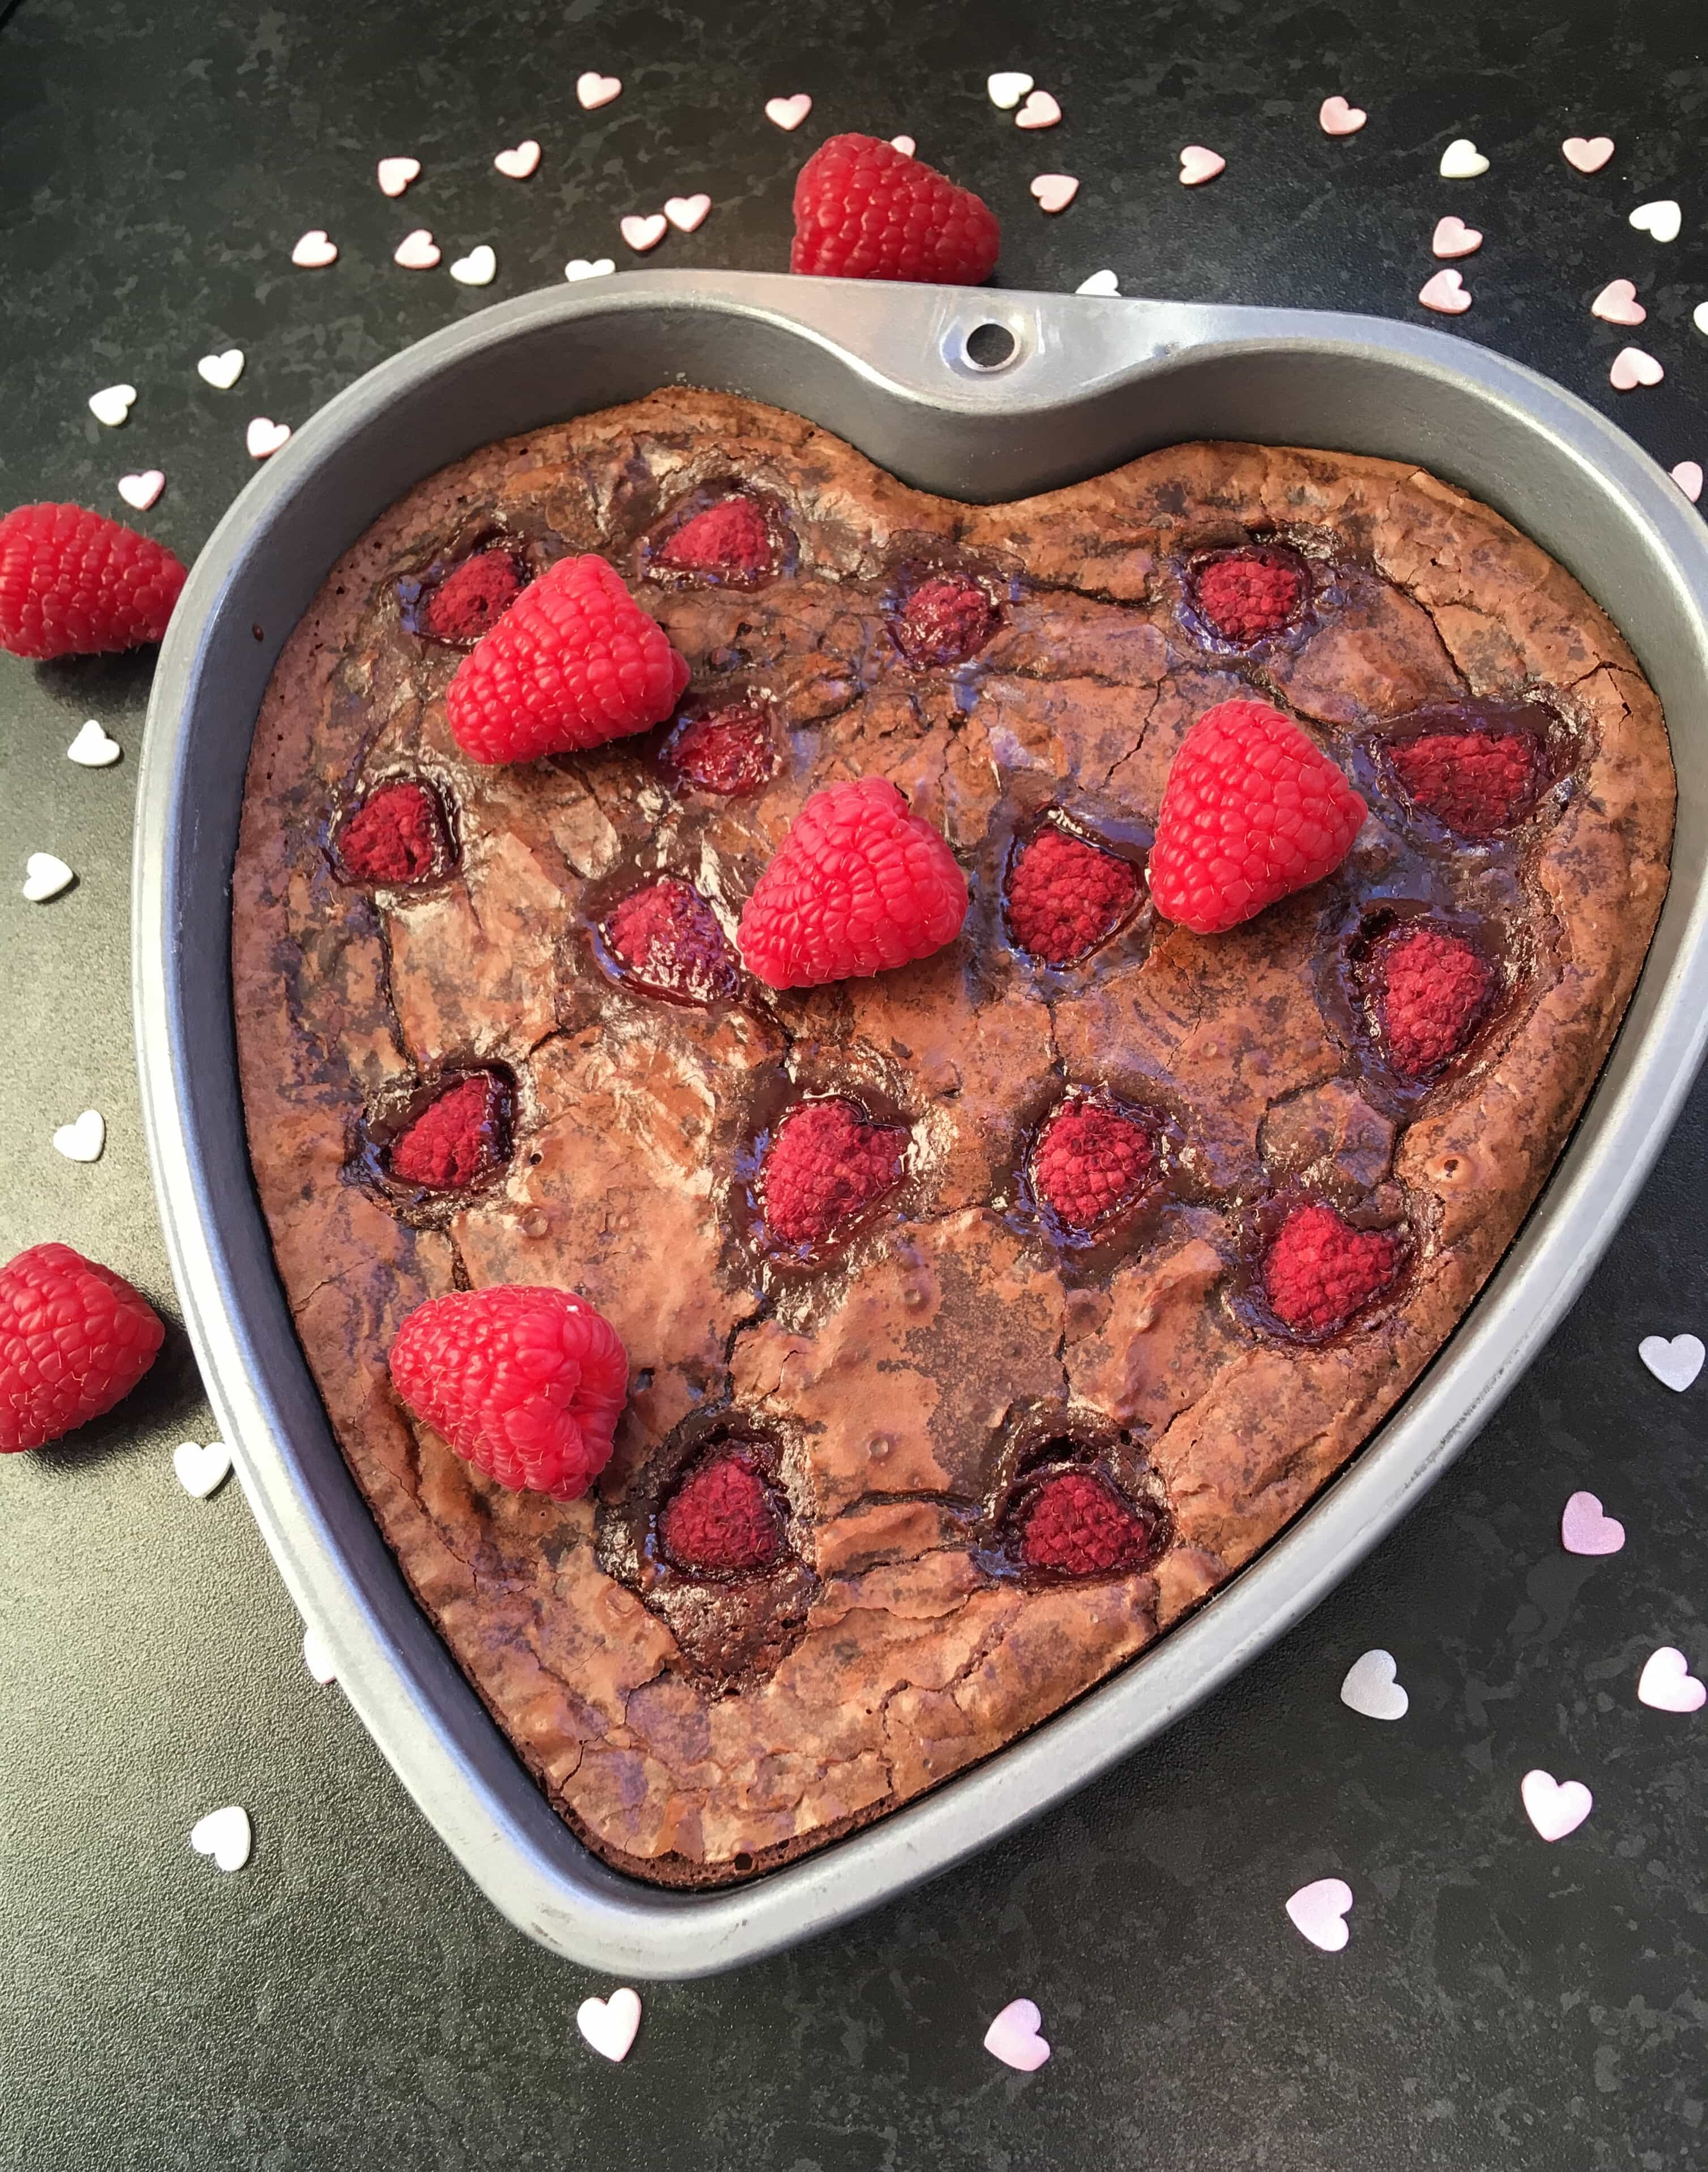 A heart shaped chocolate brownie cake with fresh raspberries